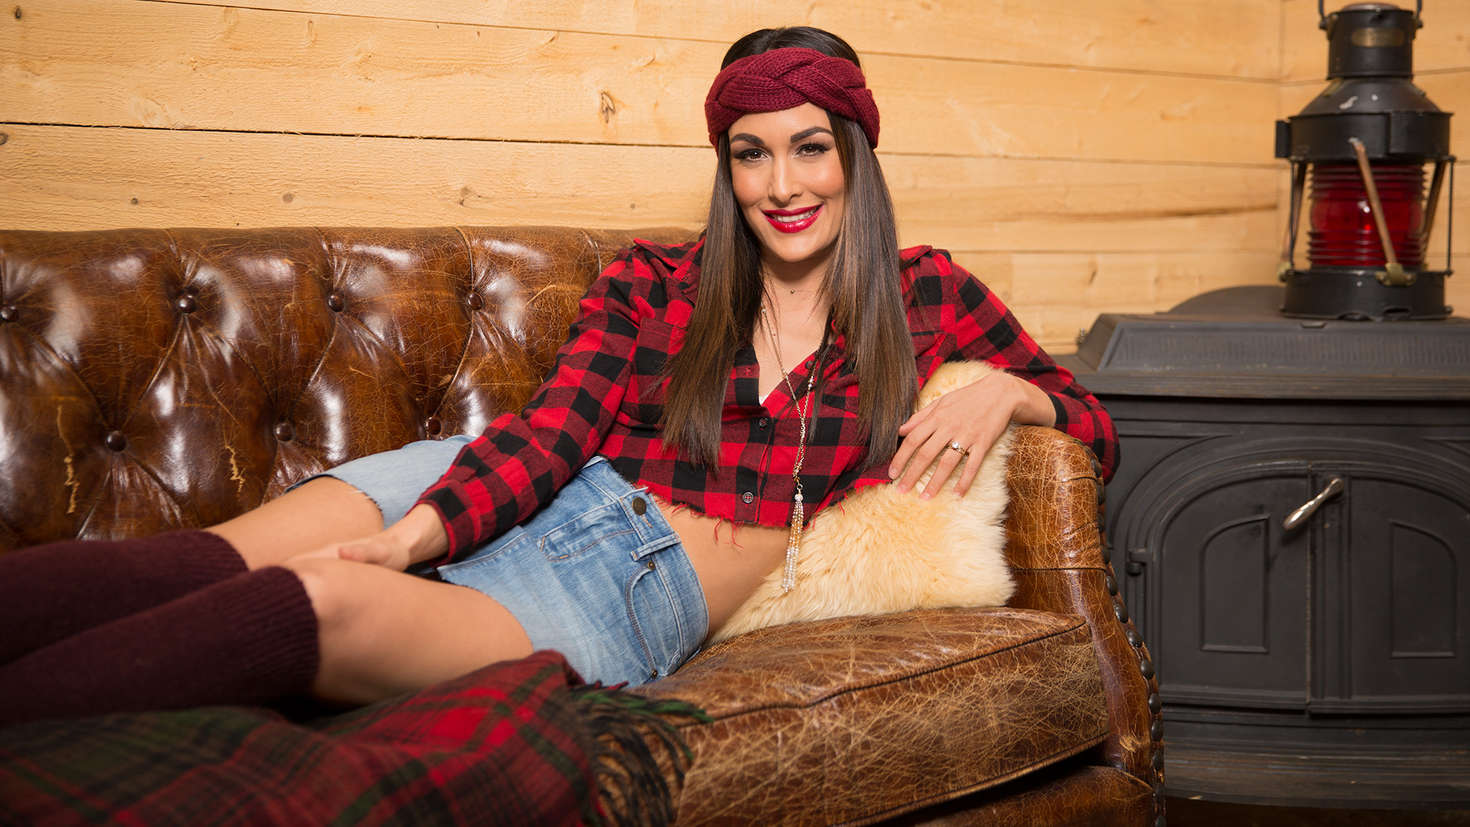 Brie Bella Cabin Fever Photoshoot